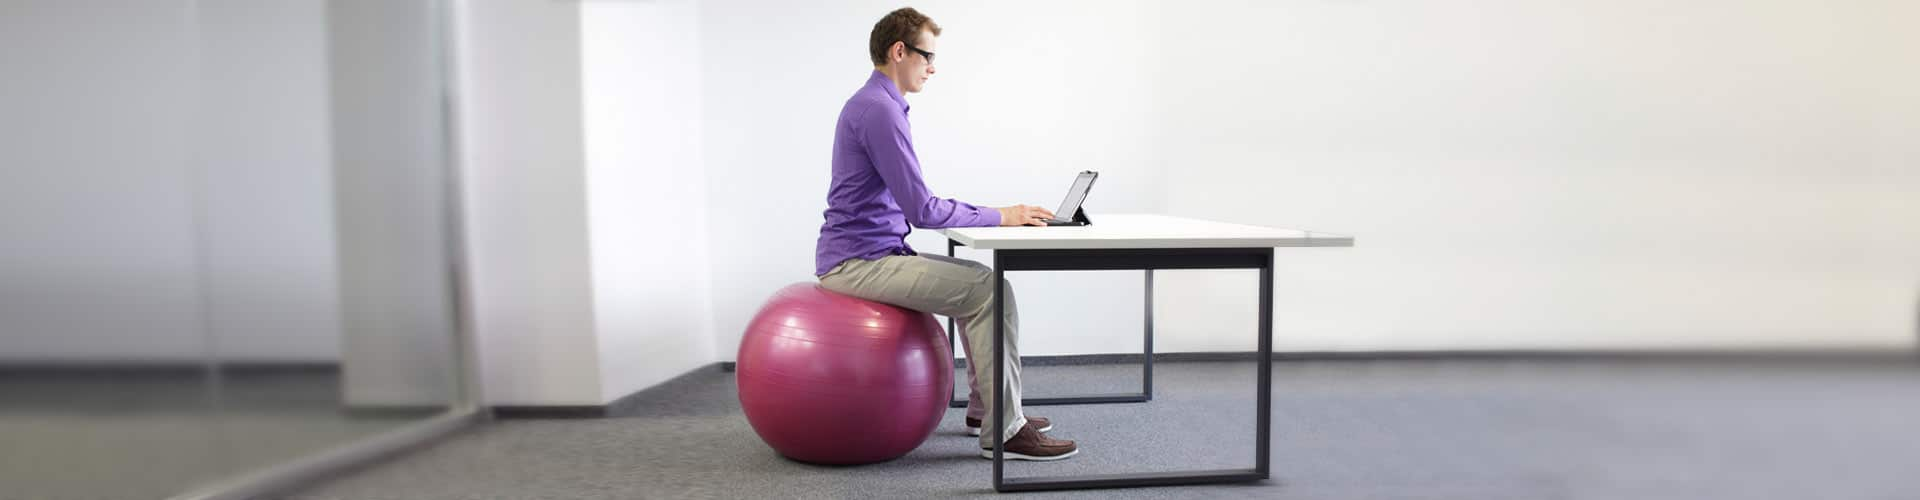 office ball chair benefits old wooden barrel chairs or stability ball: what's better to sit on at work? - builtlean